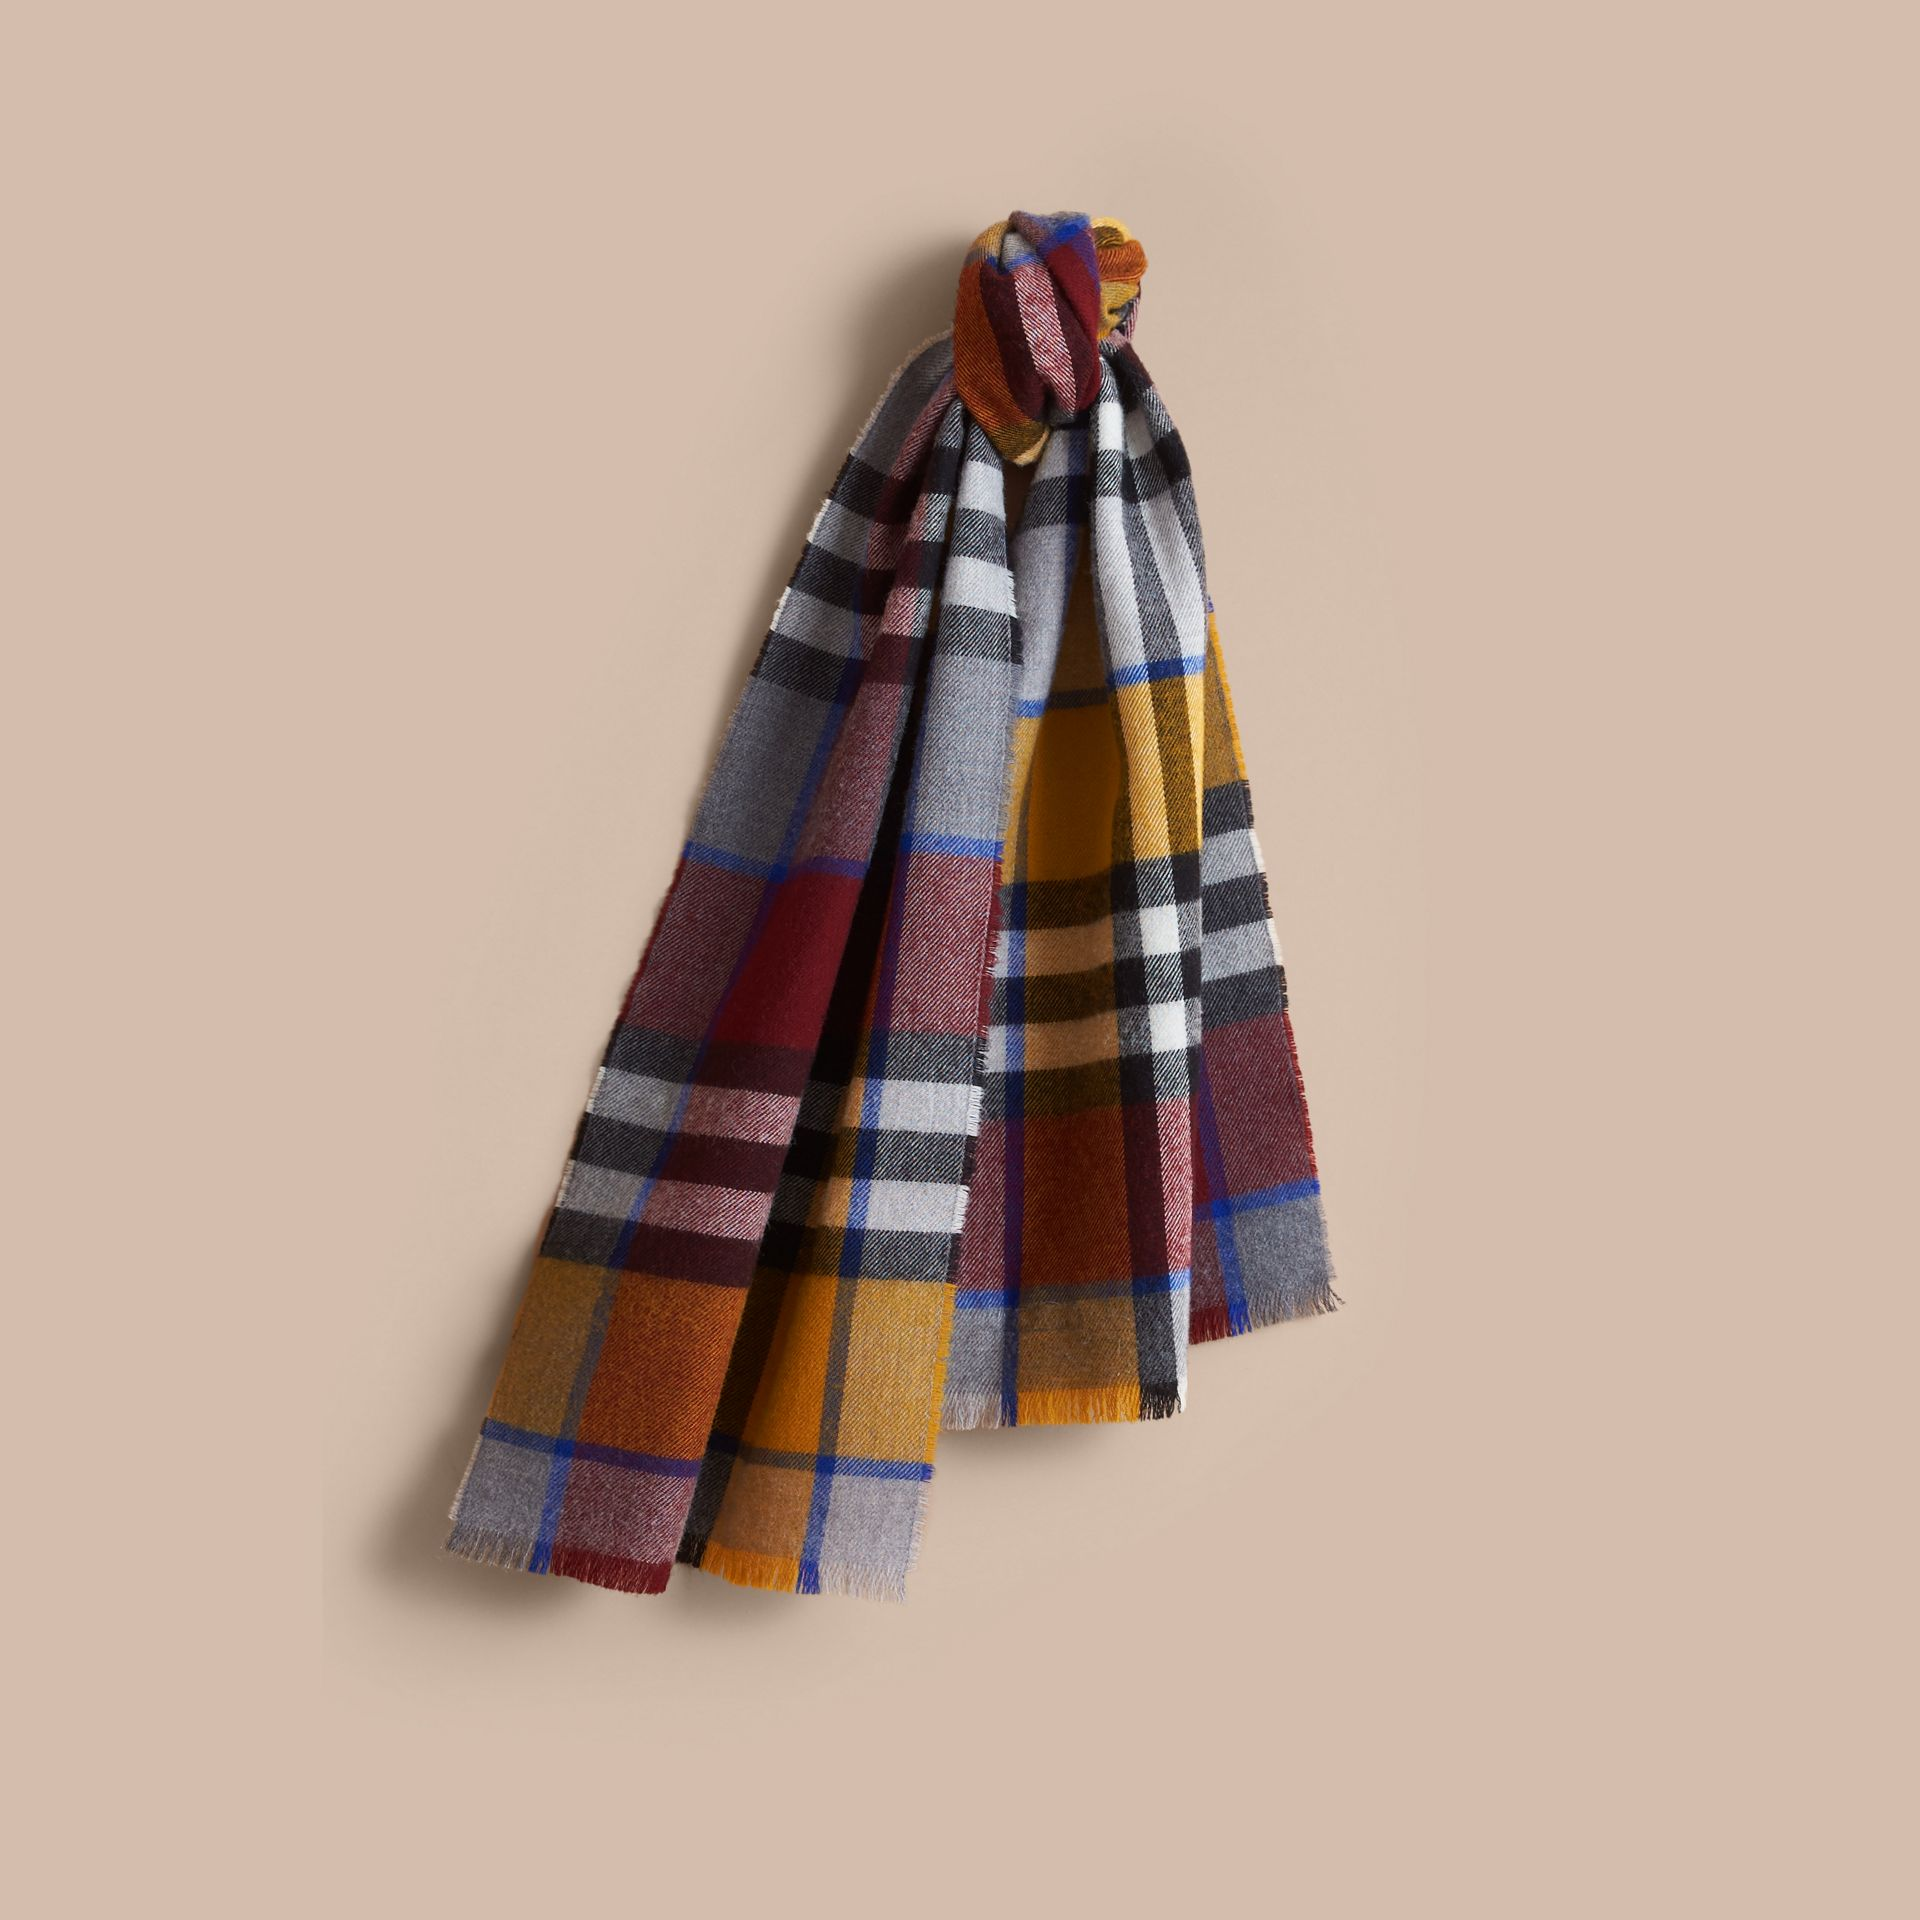 Overdyed Exploded Check Merino Wool Scarf in Burgndy/ochre Yellow | Burberry United Kingdom - gallery image 1